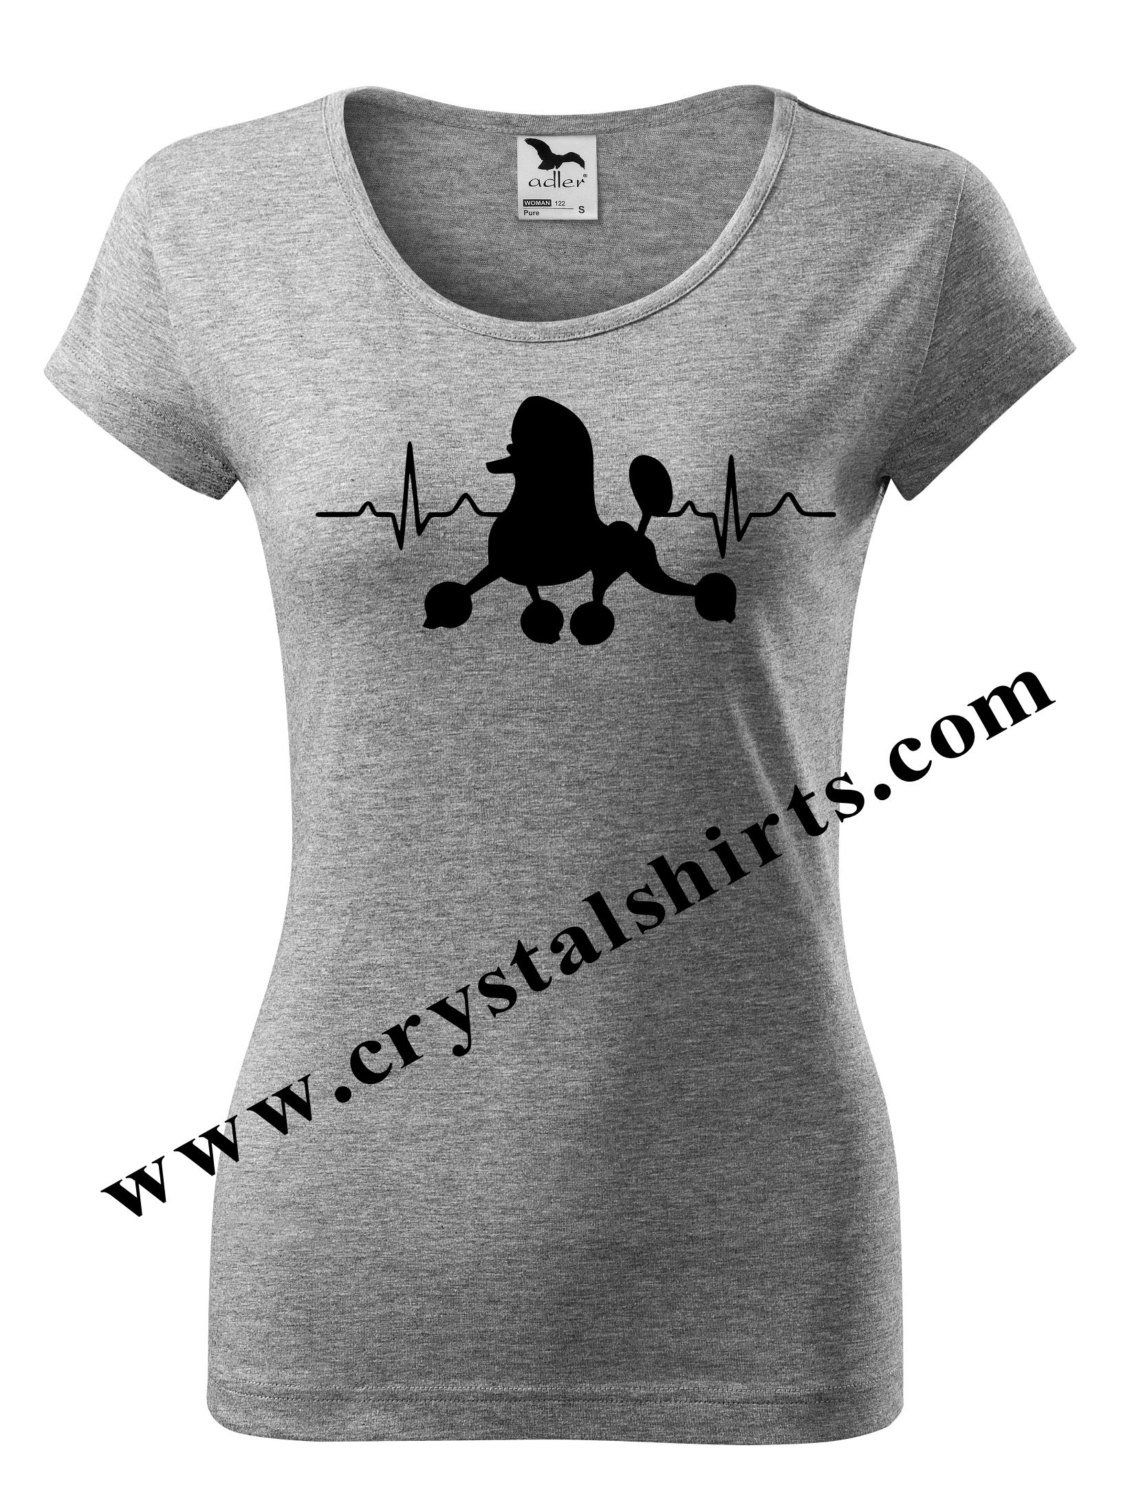 Pin by Rea Crowder on Tee shirts T shirts for women, Tee